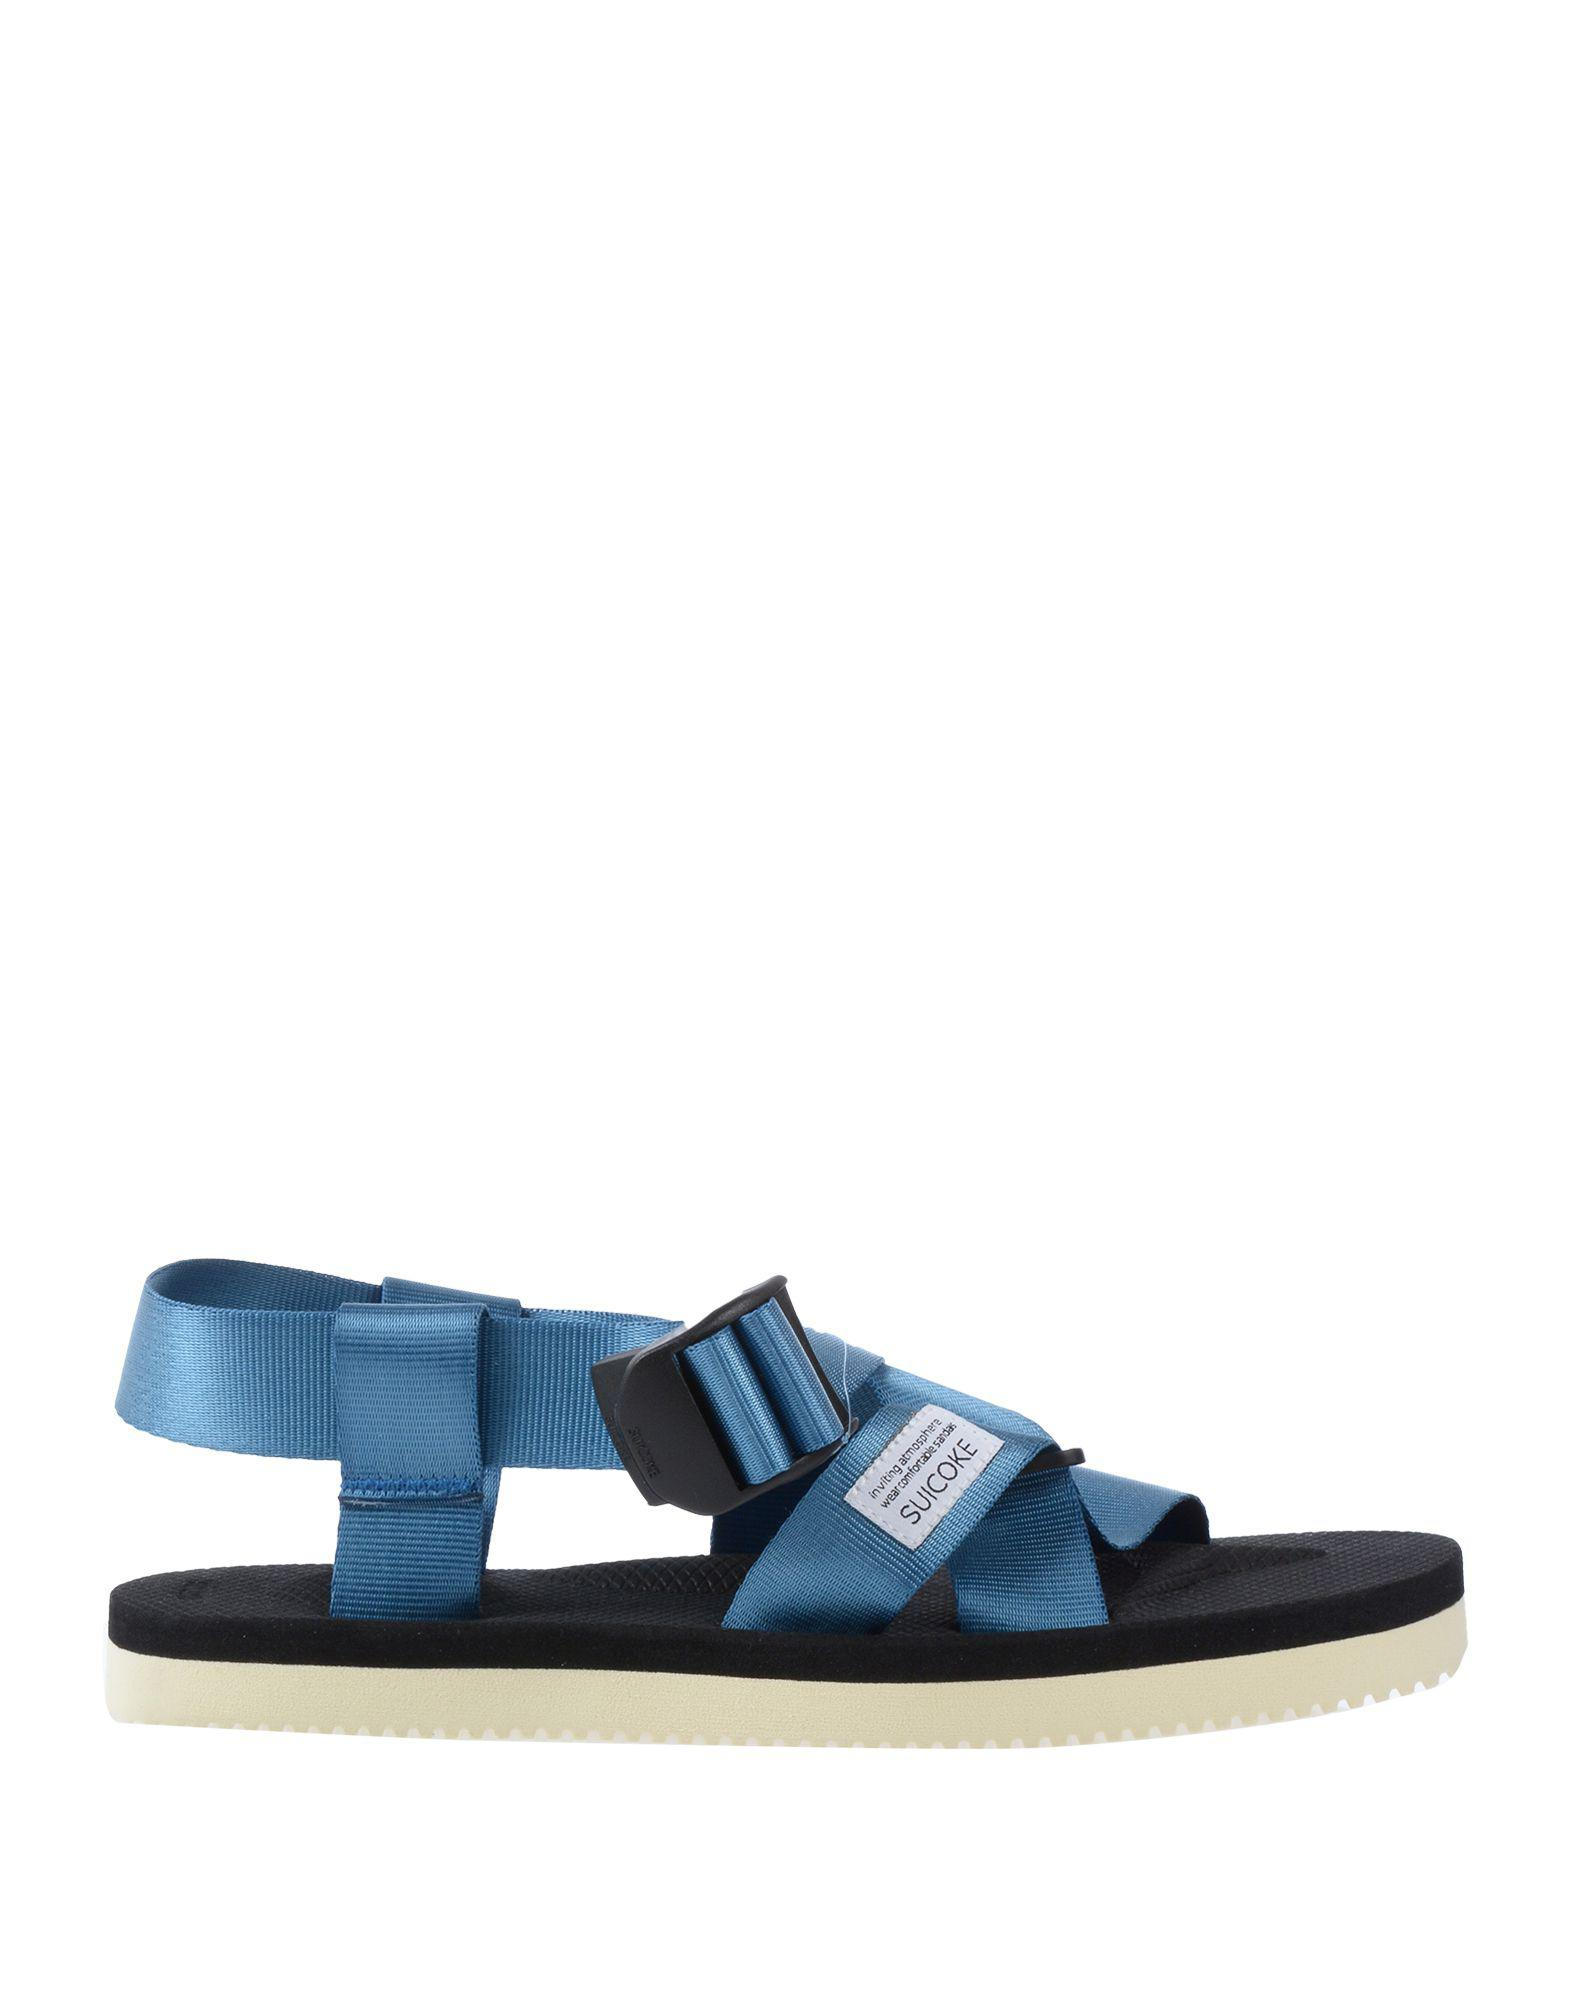 8b0dba02bd0 Suicoke - Blue Sandals for Men - Lyst. View fullscreen